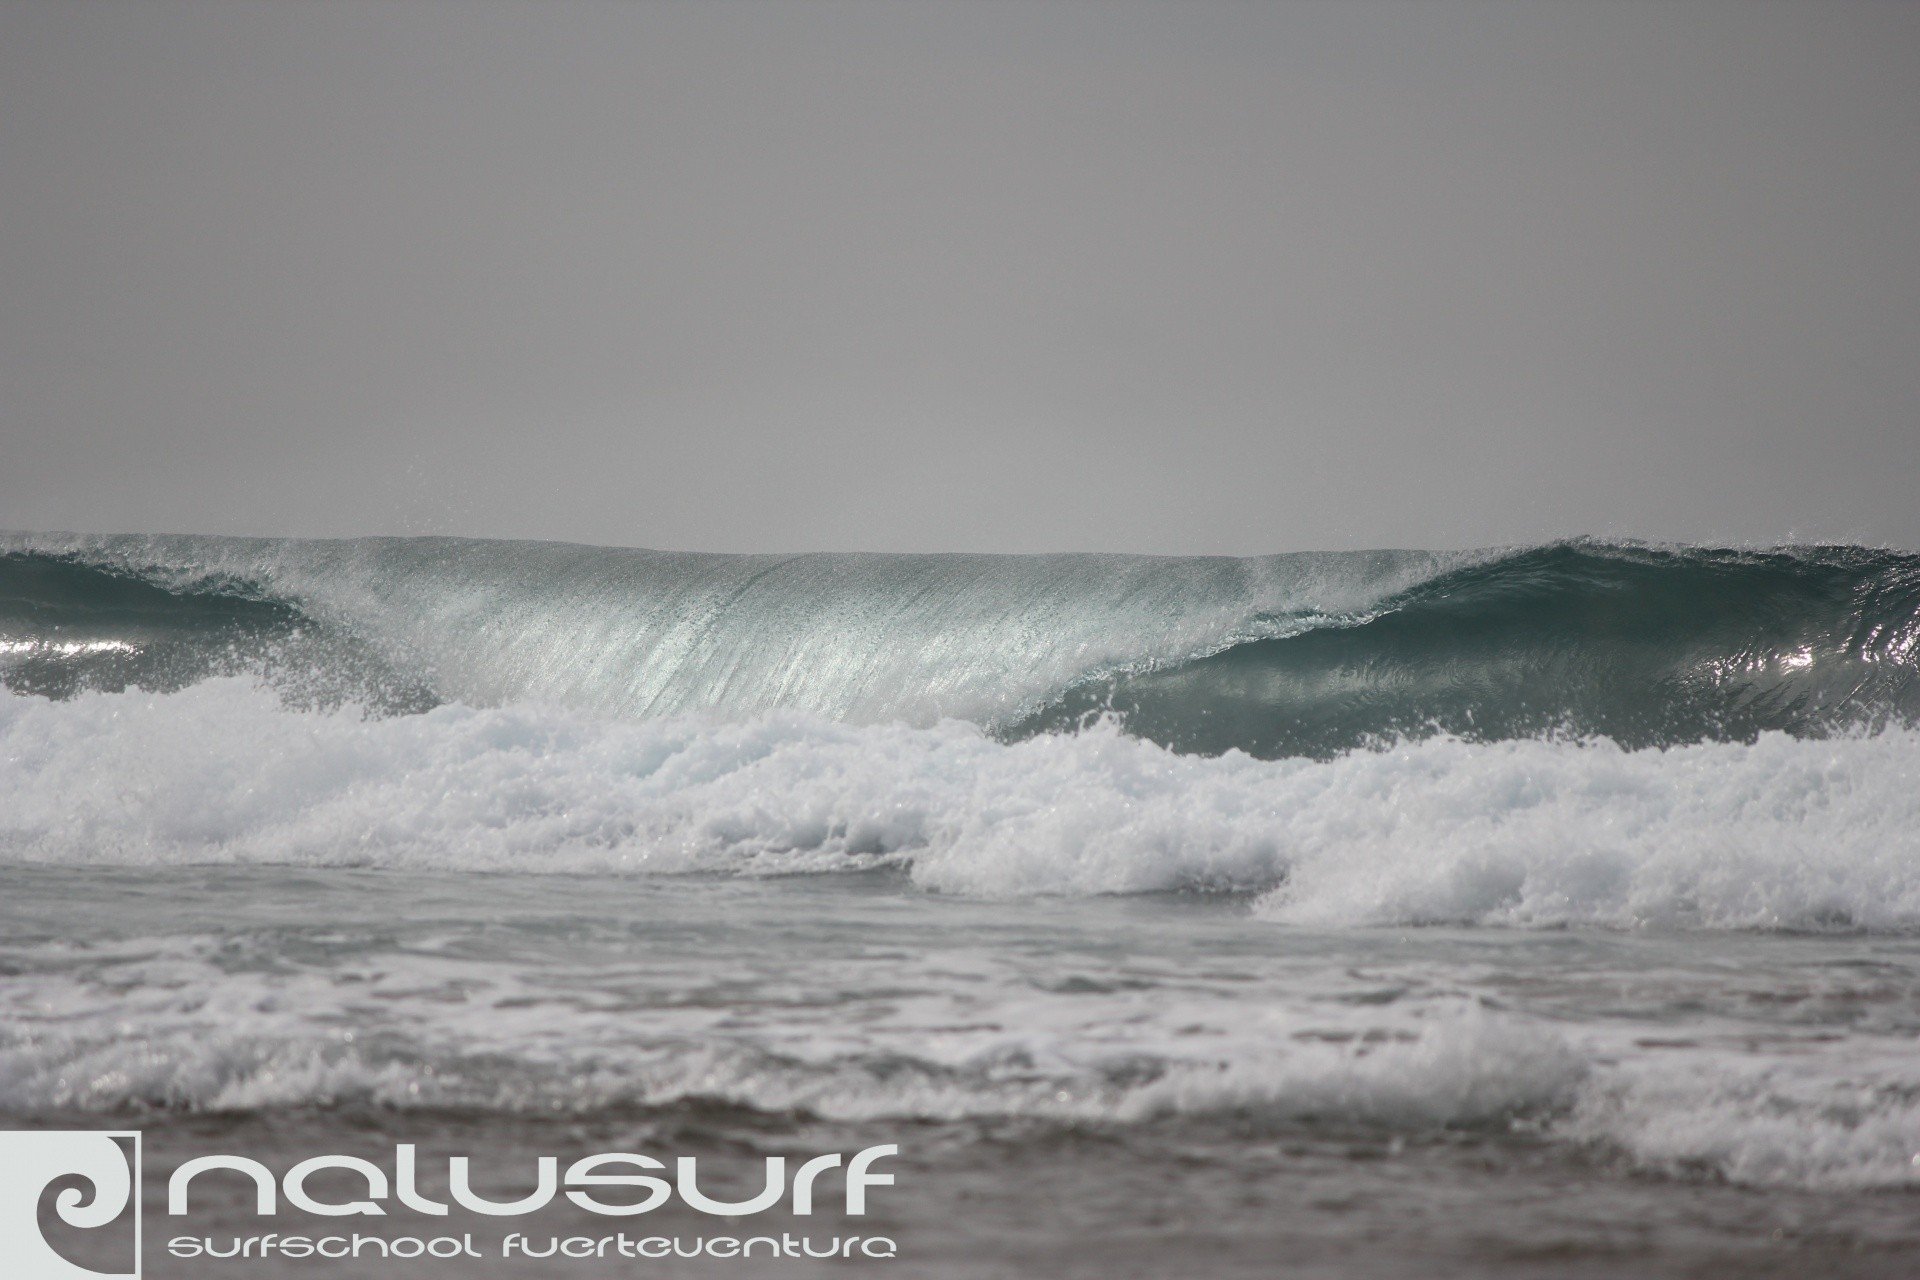 Nalusurf Surfcamp & Surfschool Fuerteventura's photo of Playa de la Pared